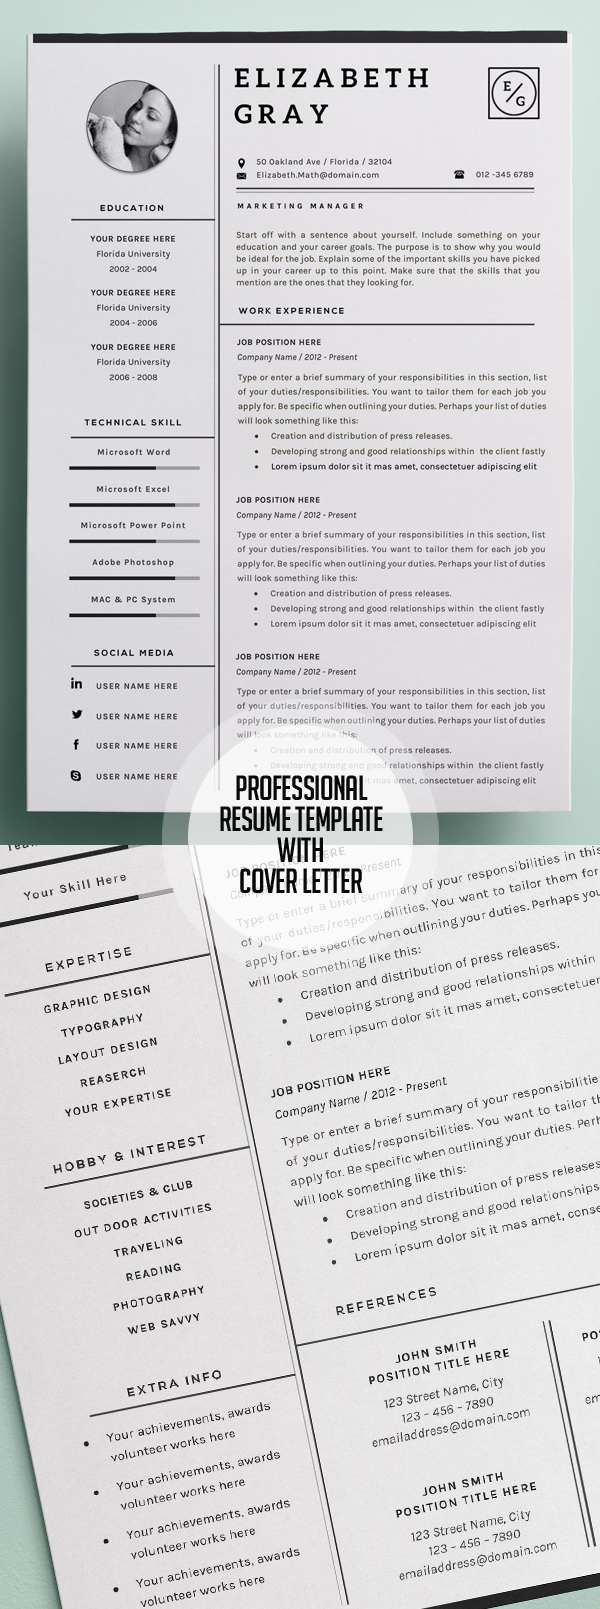 50 Best Resume Templates For 2018   30